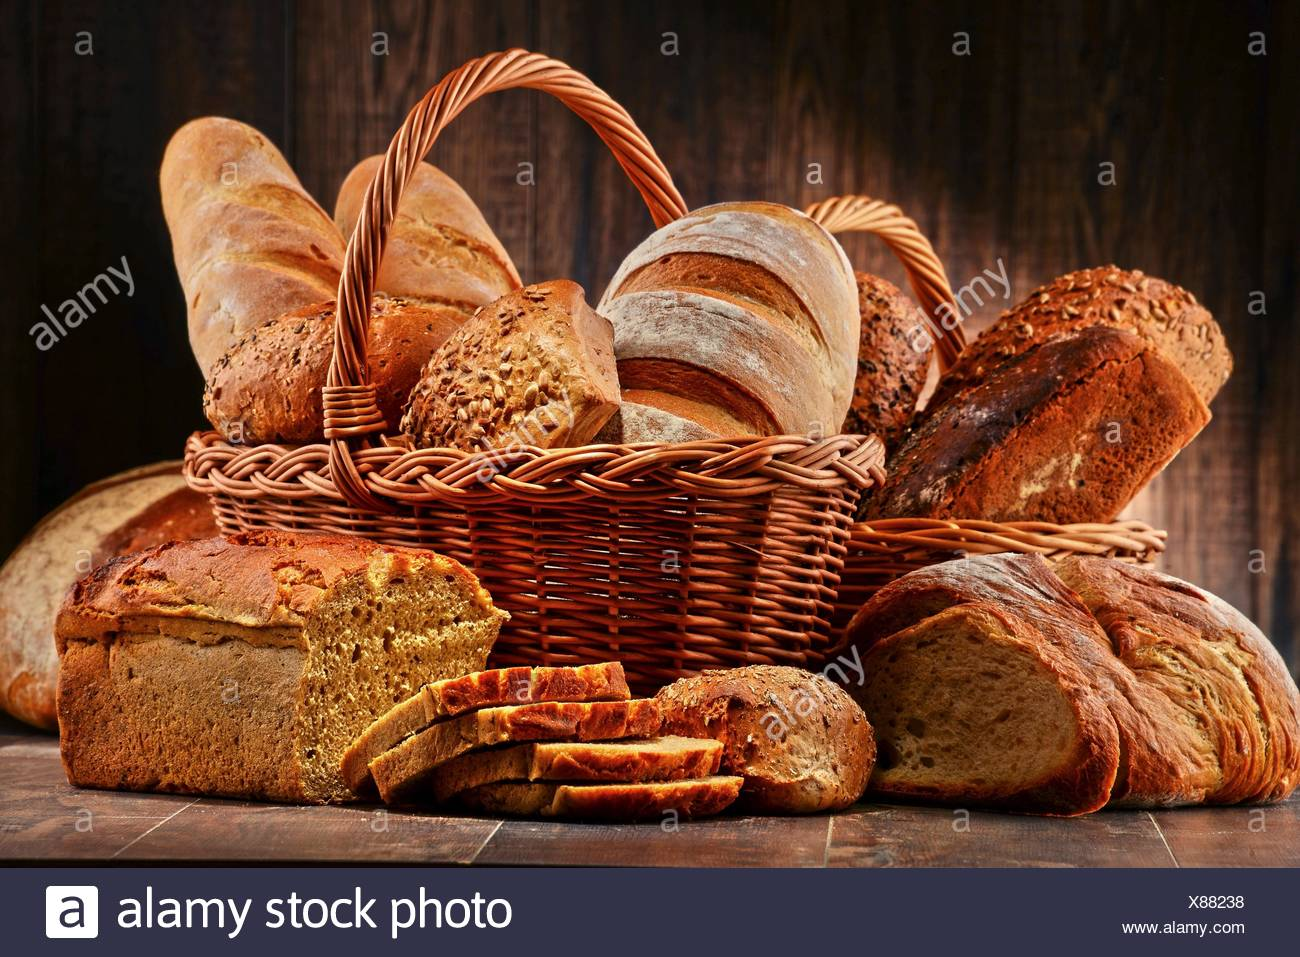 Composition with variety of baking products on wooden table. - Stock Image